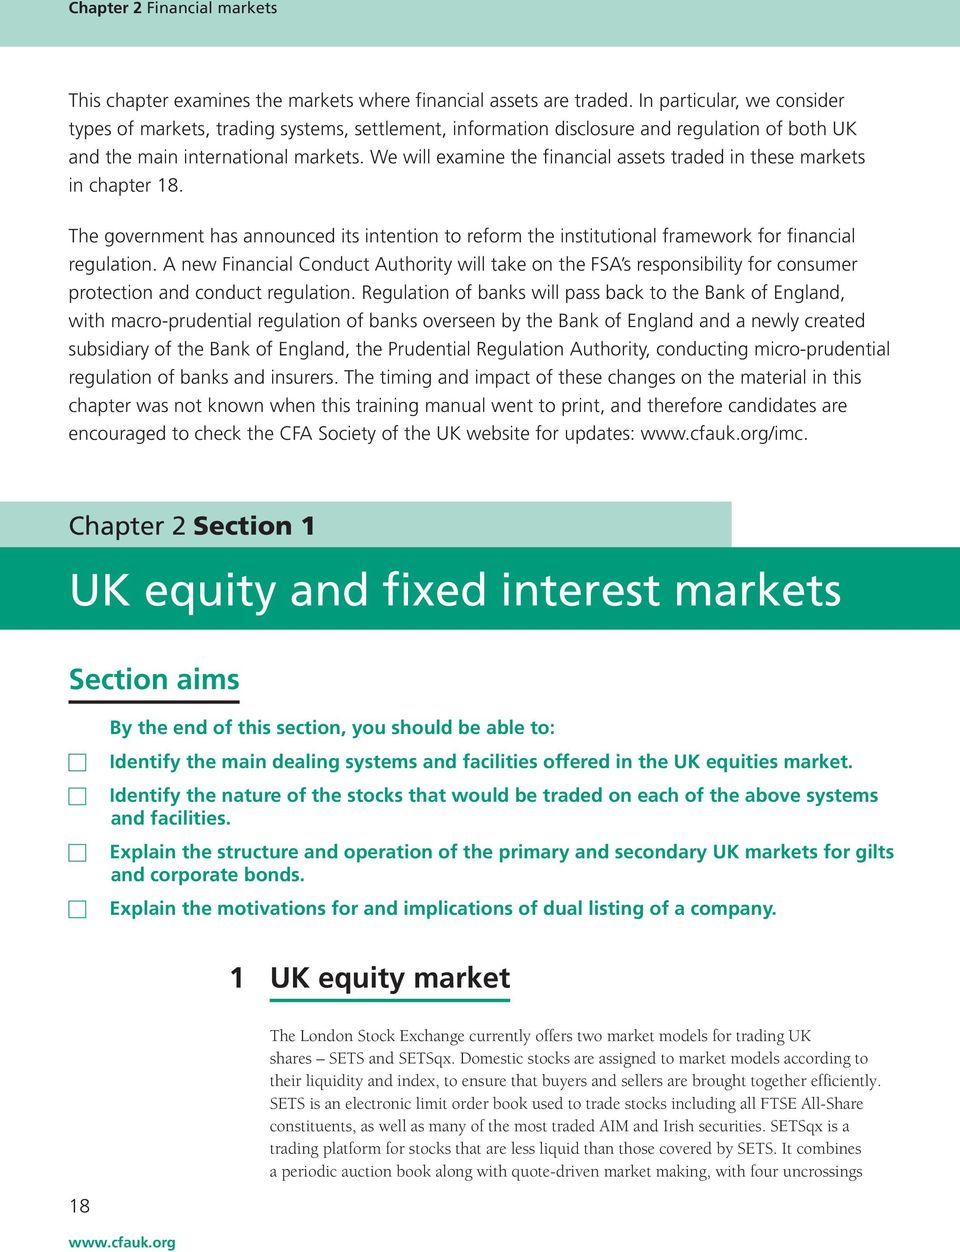 We will examine the financial assets traded in these markets in chapter 18. The government has announced its intention to reform the institutional framework for financial regulation.